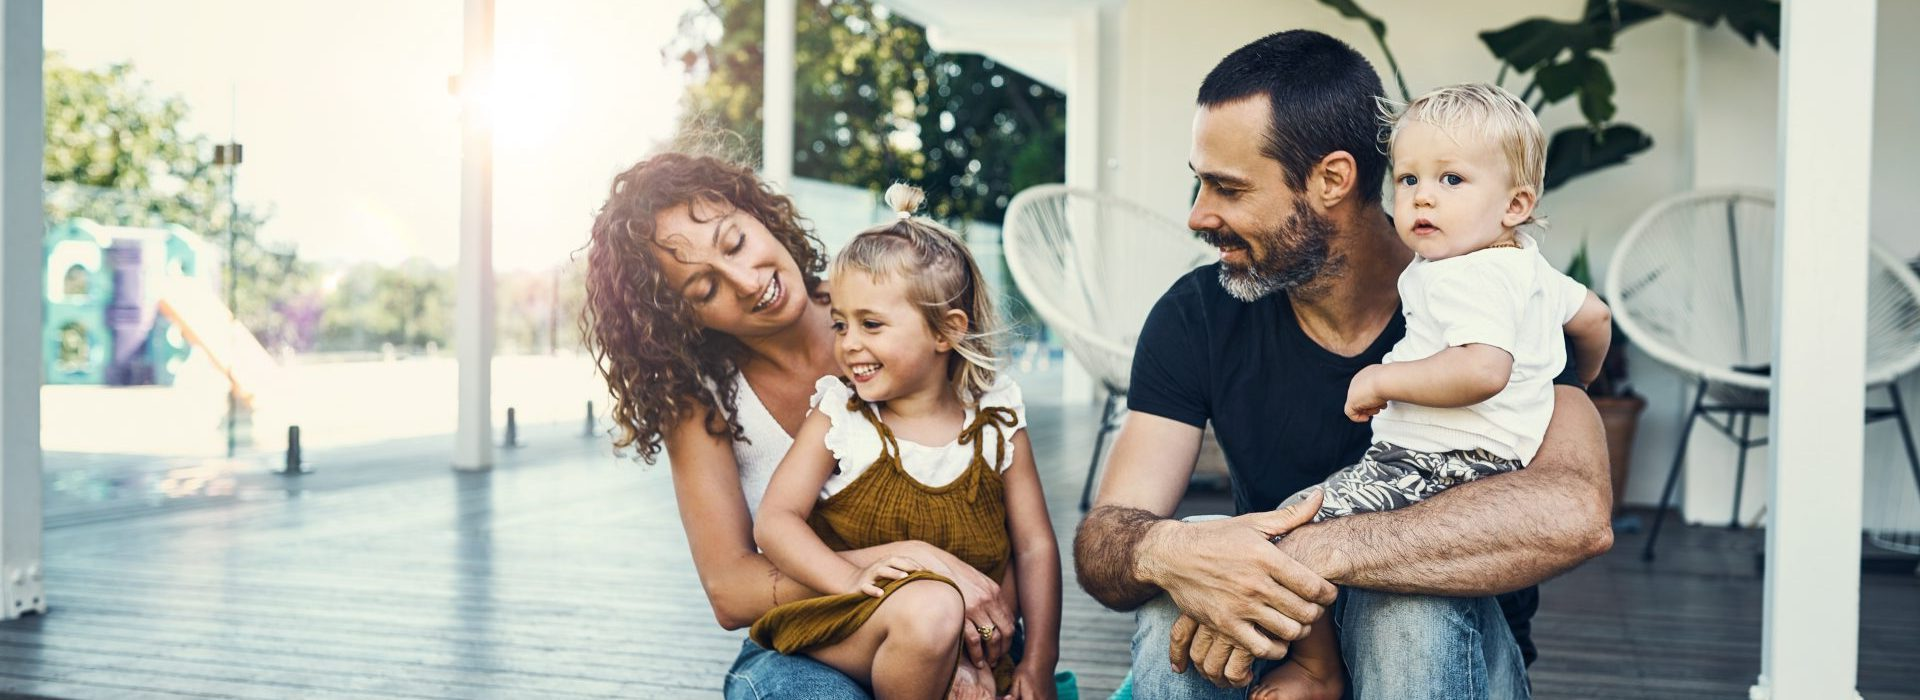 Family sitting on porch of house, symbolizing personal insurance quote from Bankers Insurance.